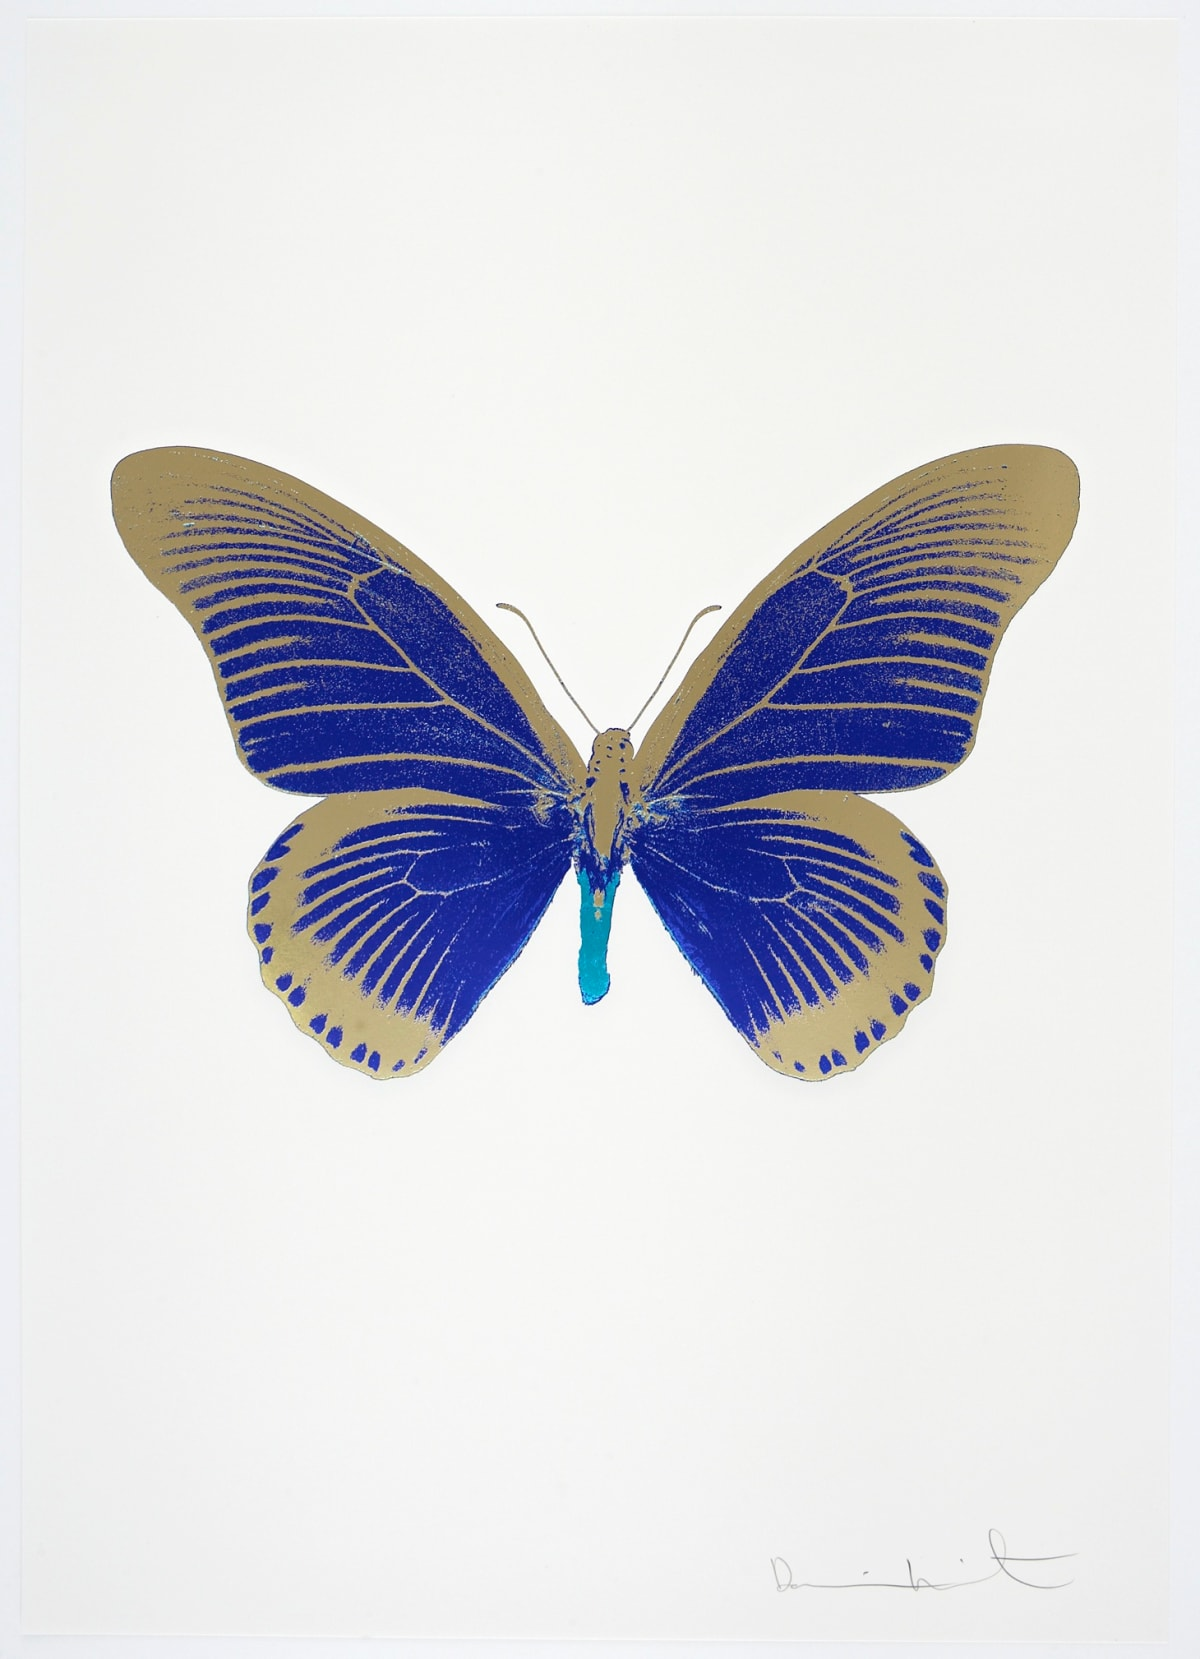 Damien Hirst The Souls IV - Westminster Blue/Cool Gold/Topaz, 2010 3 colour foil block on 300gsm Arches 88 archival paper. Signed and numbered. Published by Paul Stolper and Other Criteria 72 x 51cm OC7987 / 1418-10 Edition of 15